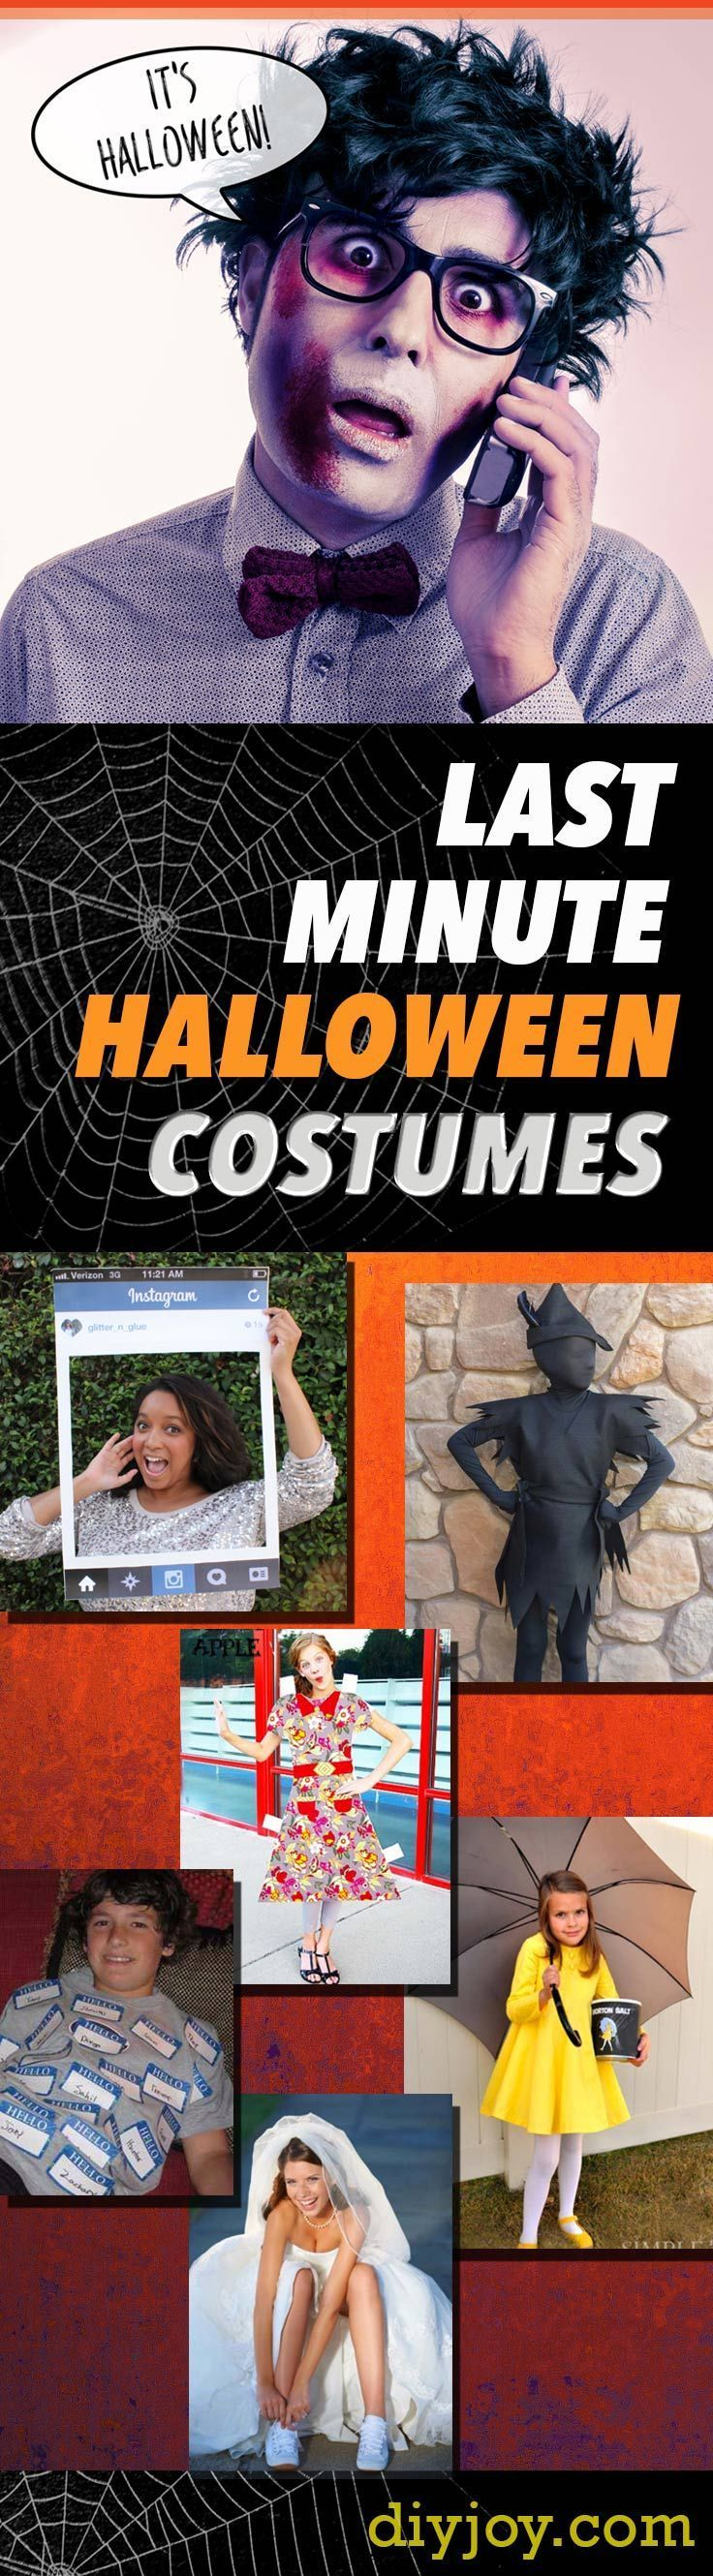 36 Last Minute DIY Halloween Costumes Last minute